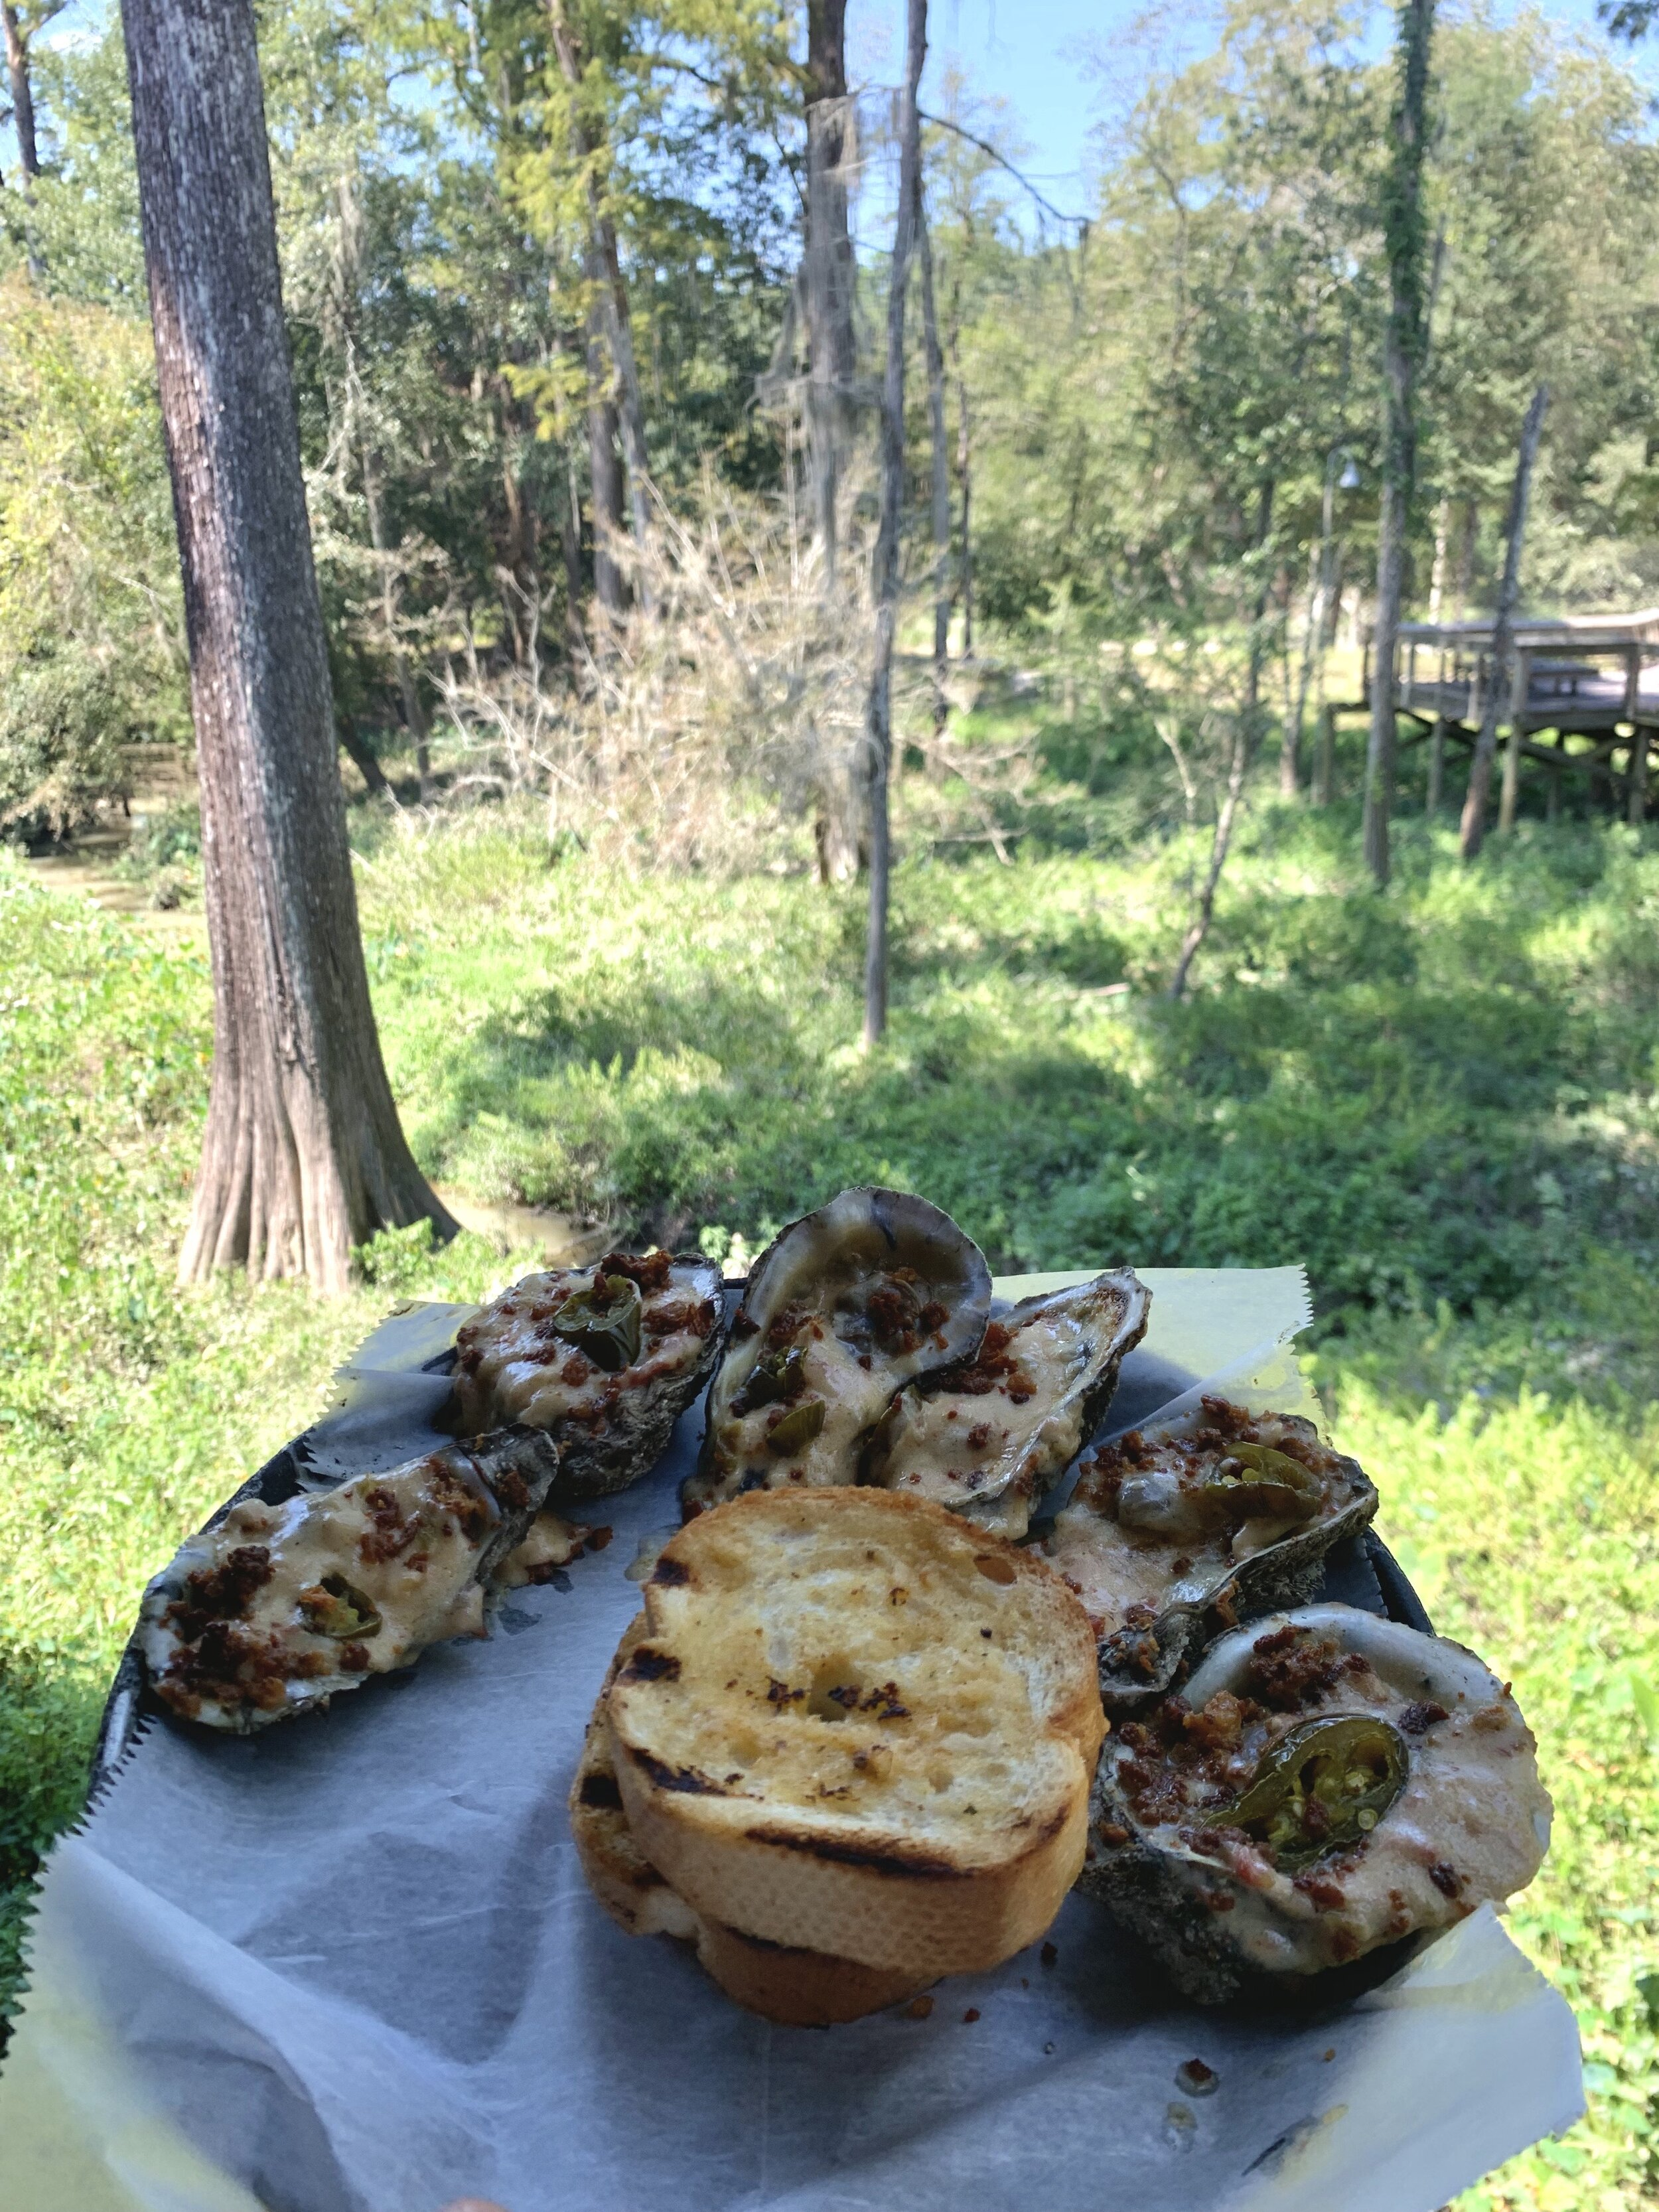 Chargrilled Oysters… the culinary highlight of Bobby's trip